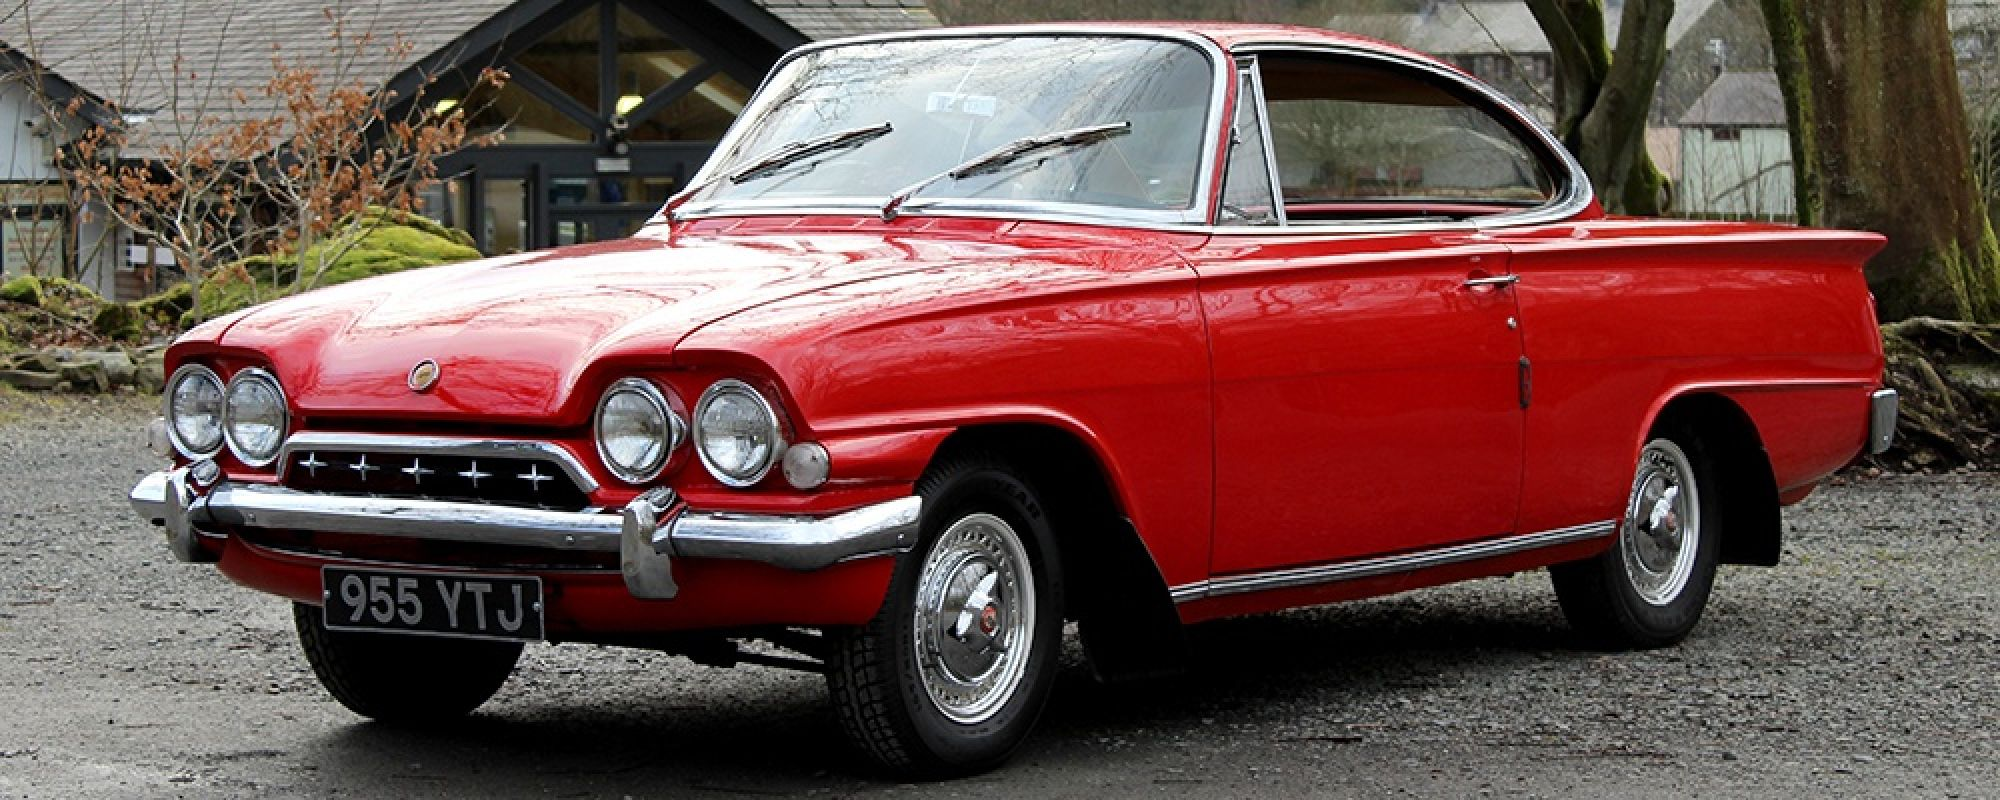 Ford Consul Capri in glorious red outside the museum